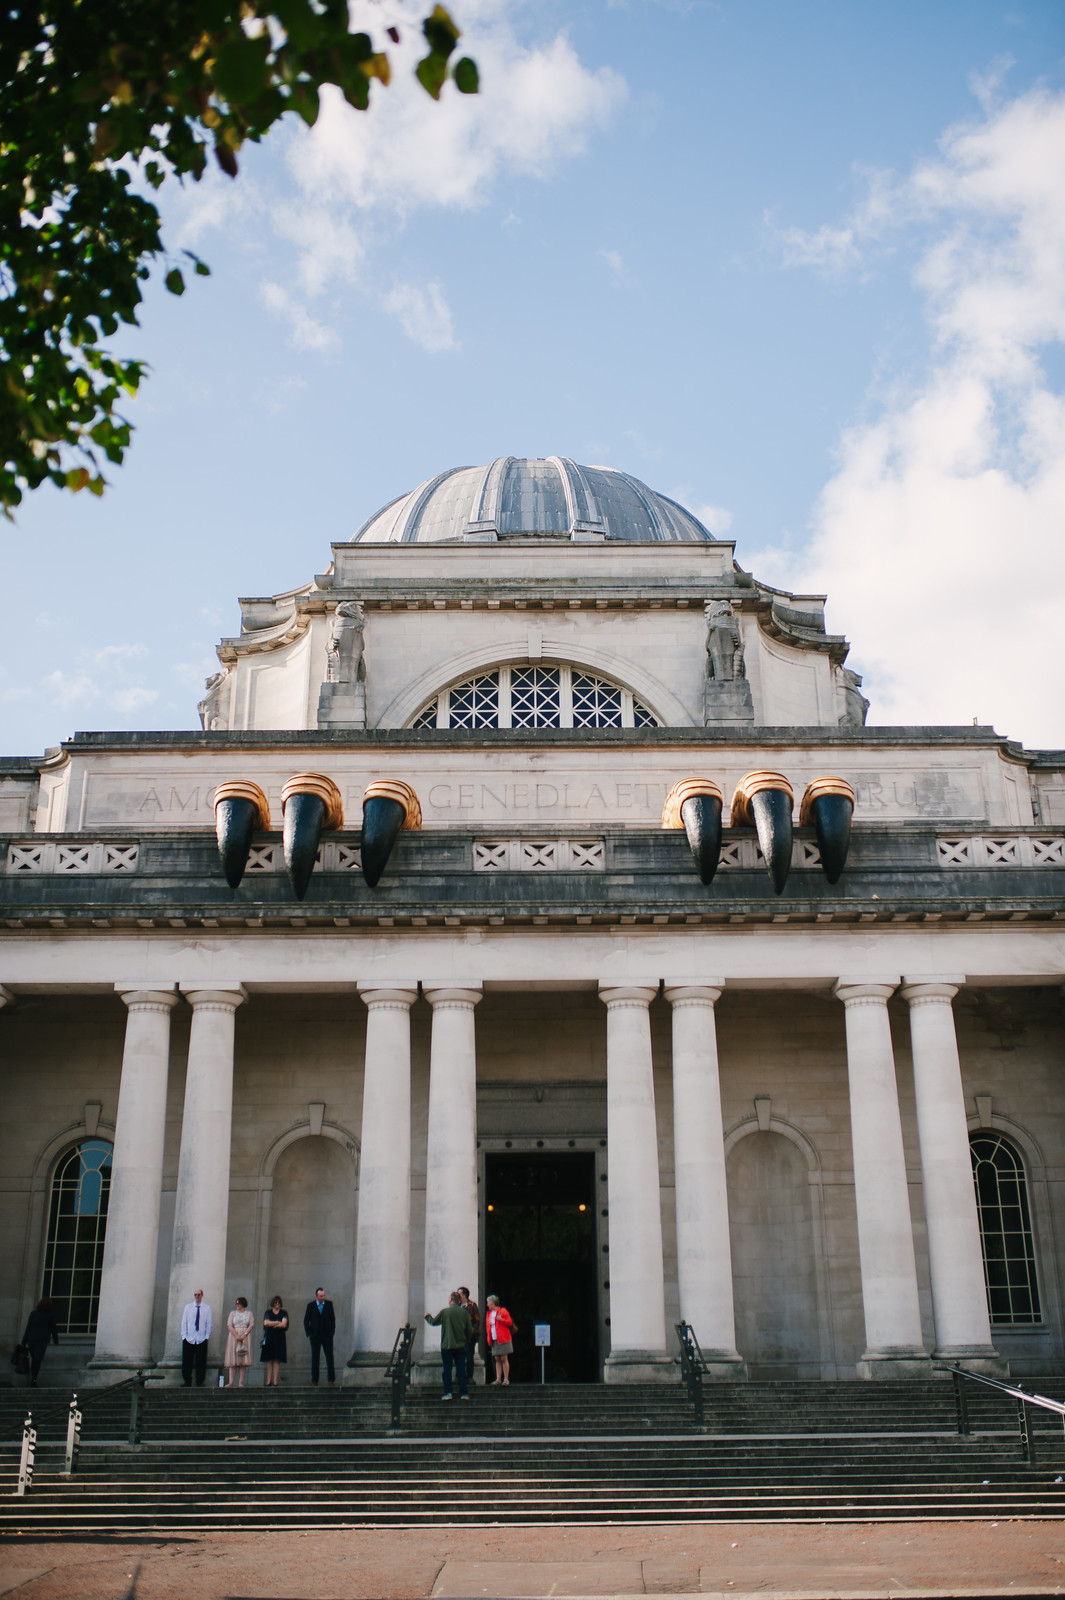 This is a picture of the exterior of the National Museum Cardiff